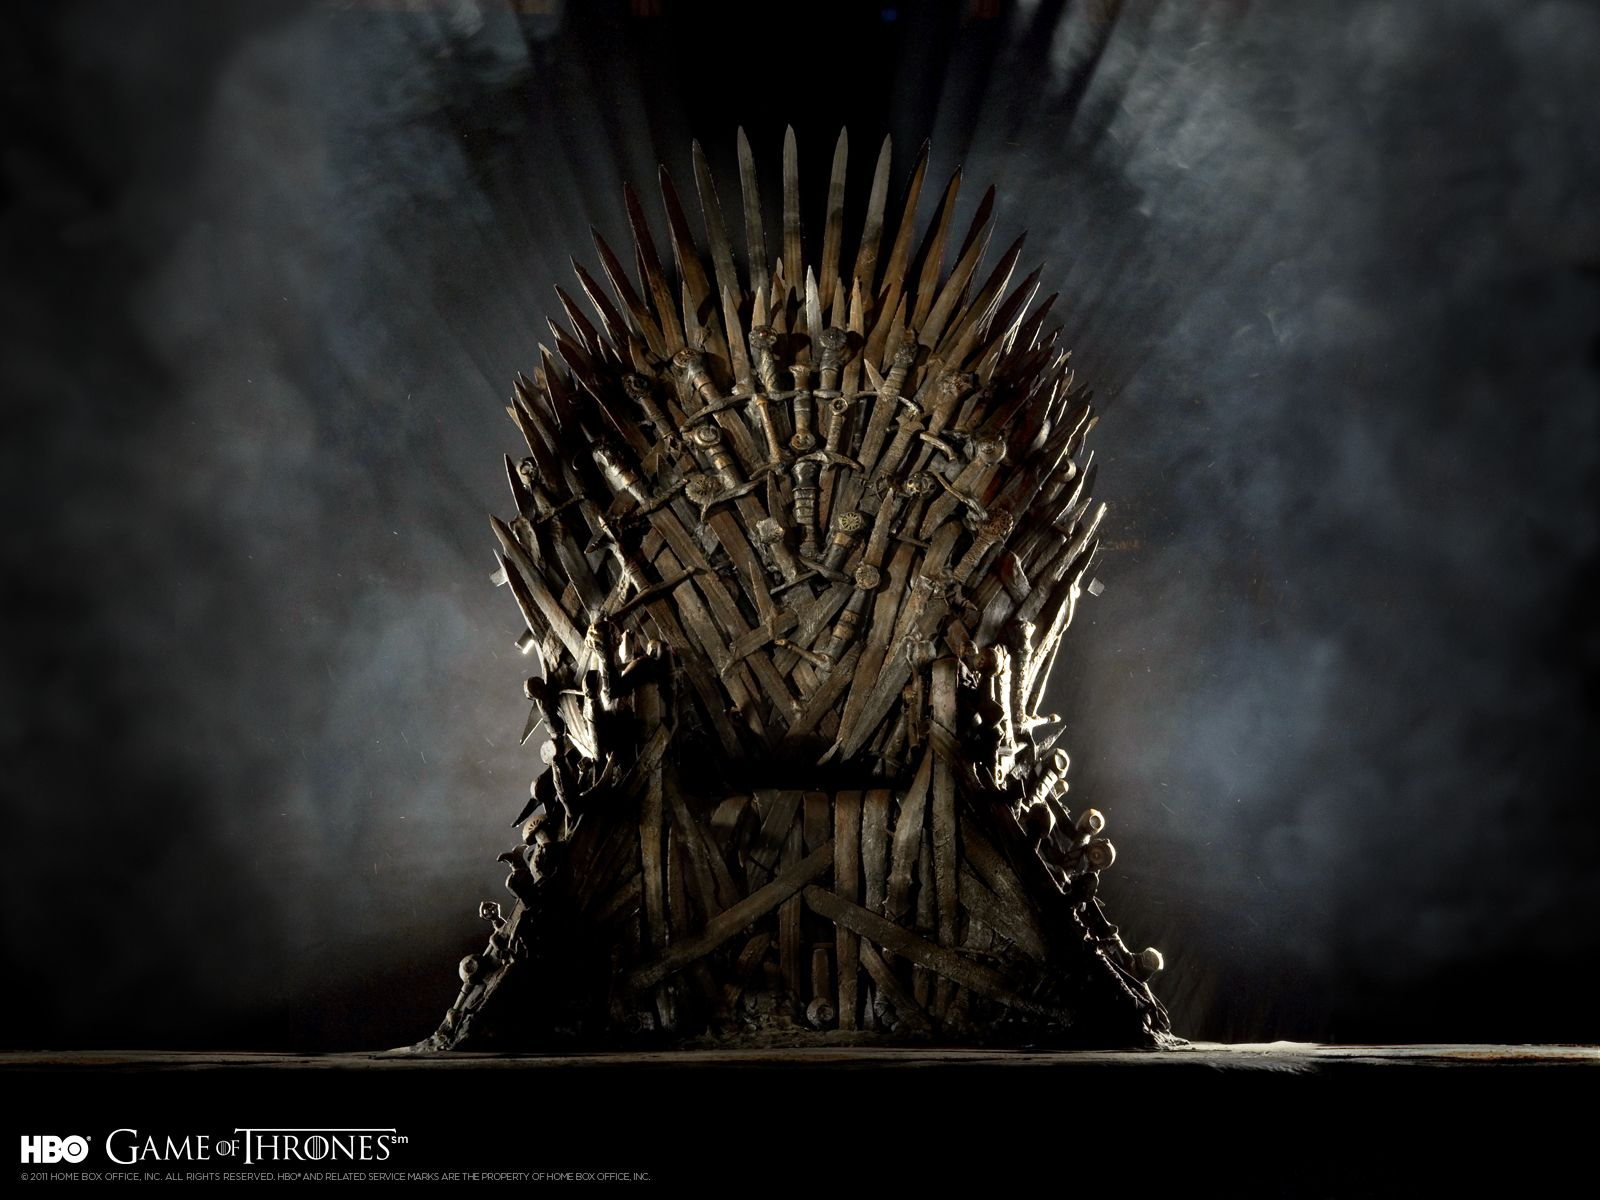 Game Of Thrones Official Website For The Hbo Series Hbo Com